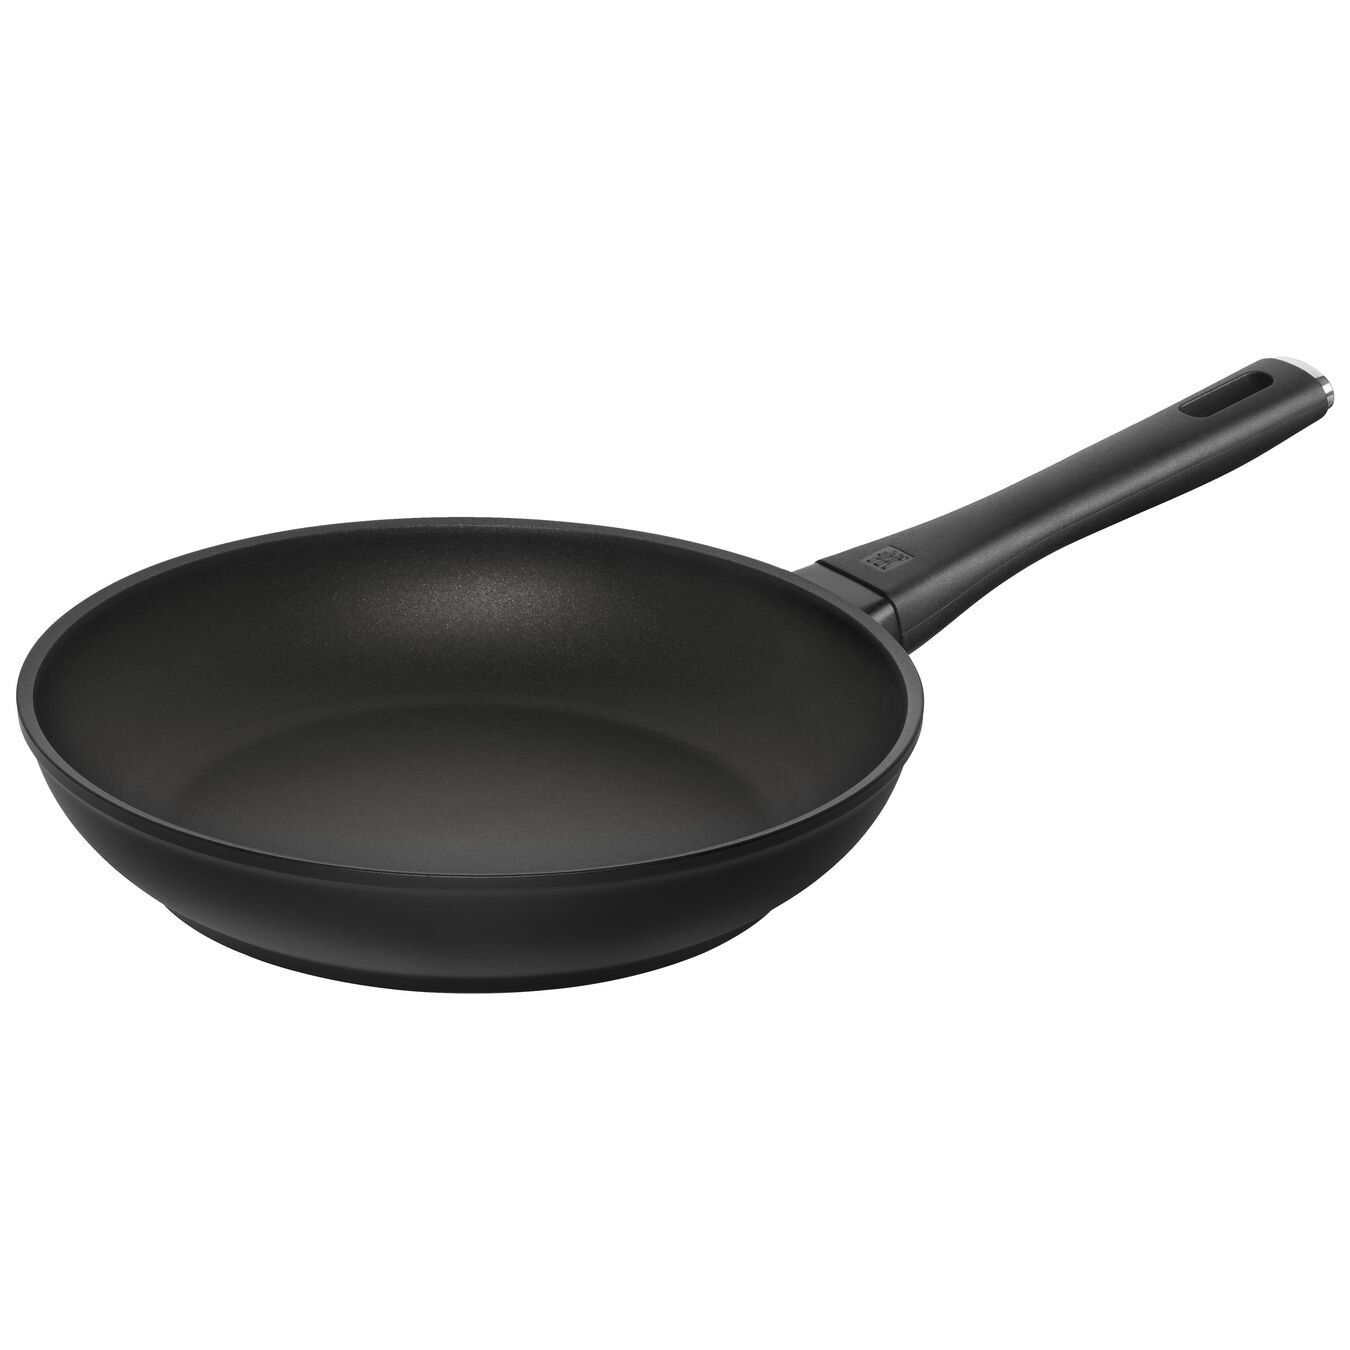 Nonstick 2-pc Fry Pan Set,,large 2